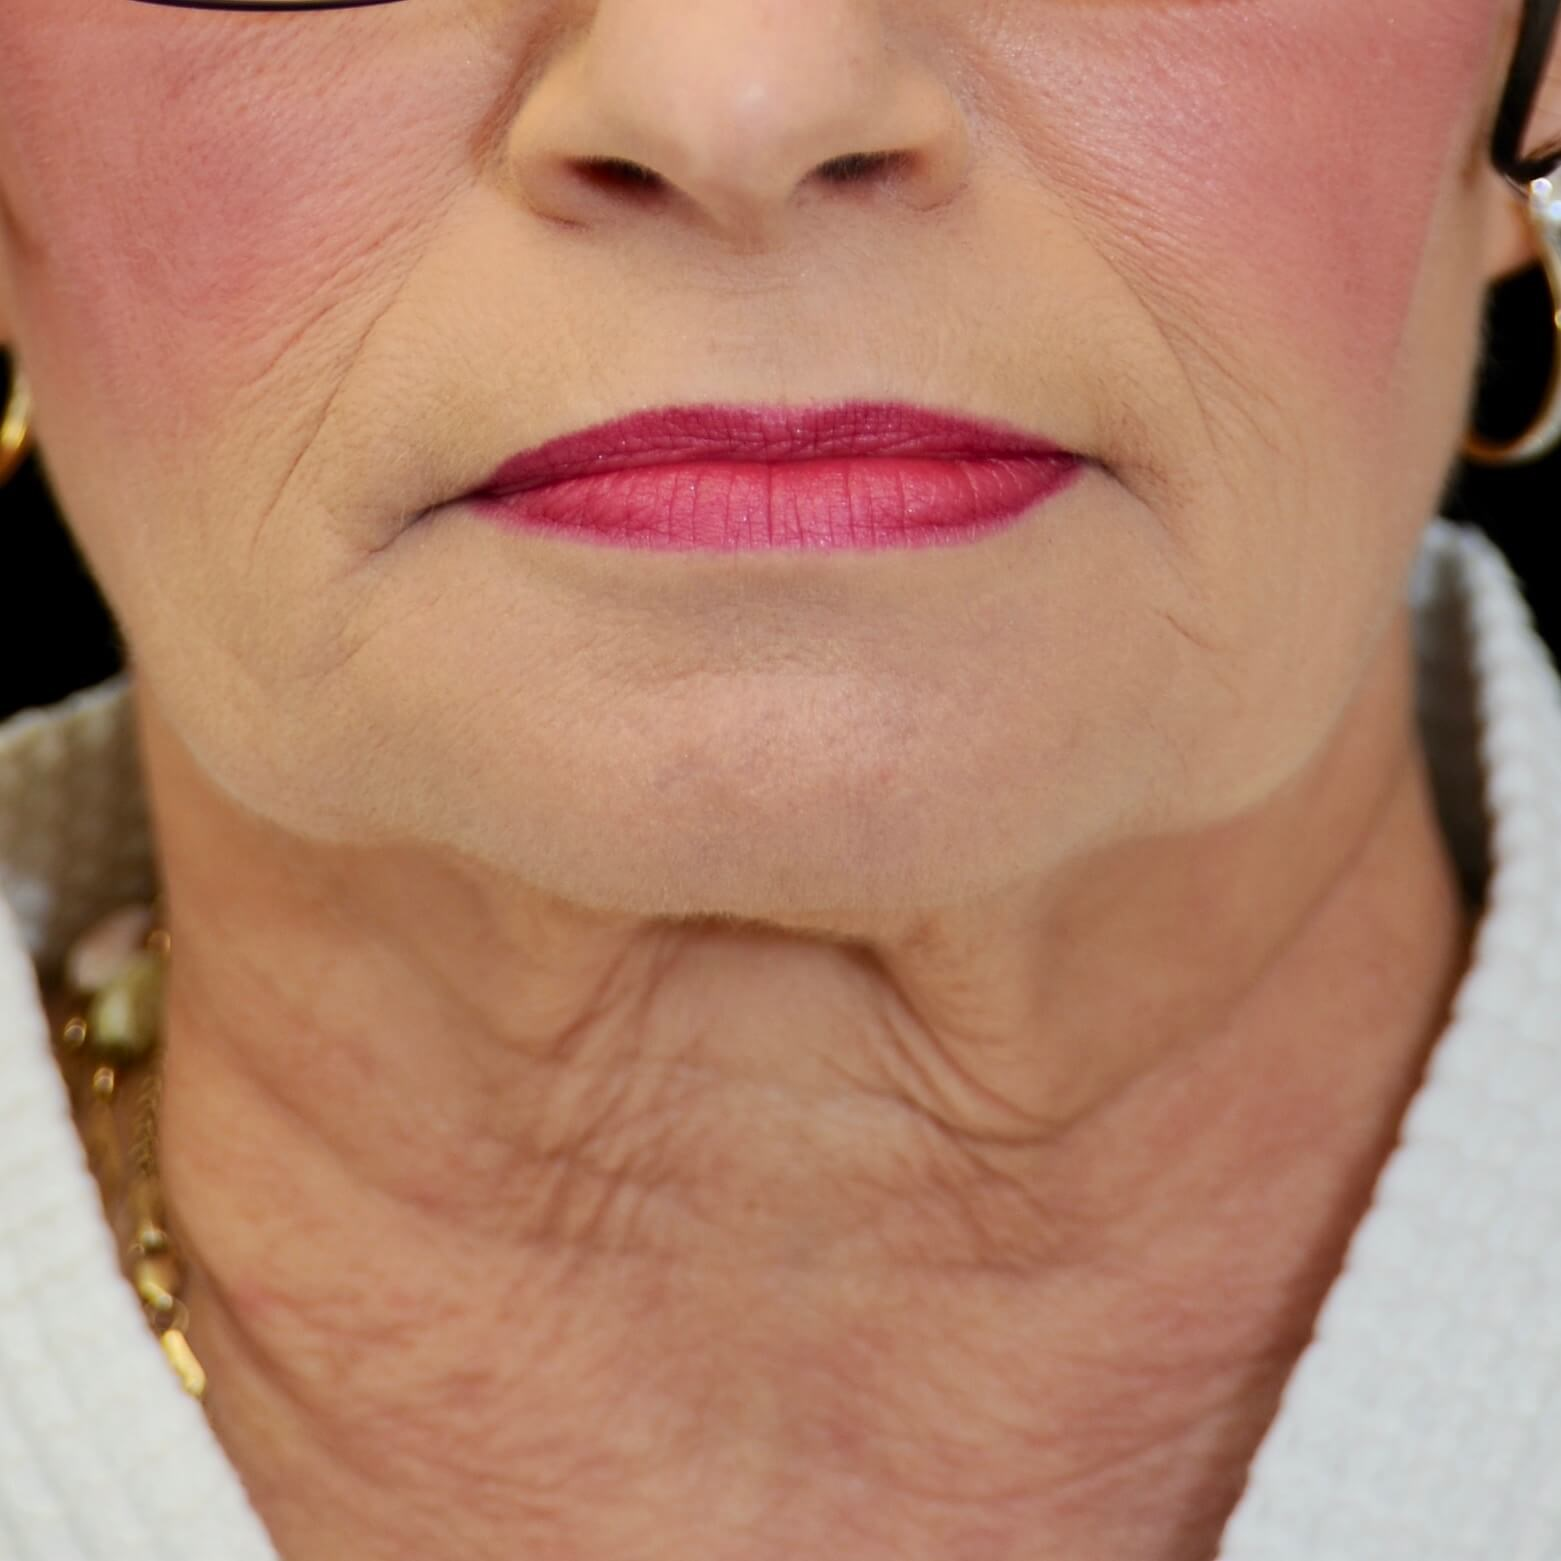 WOMAN IN DALLAS, TEXAS HAS QUICKLIFT WITH CENTRAL NECK LIFT